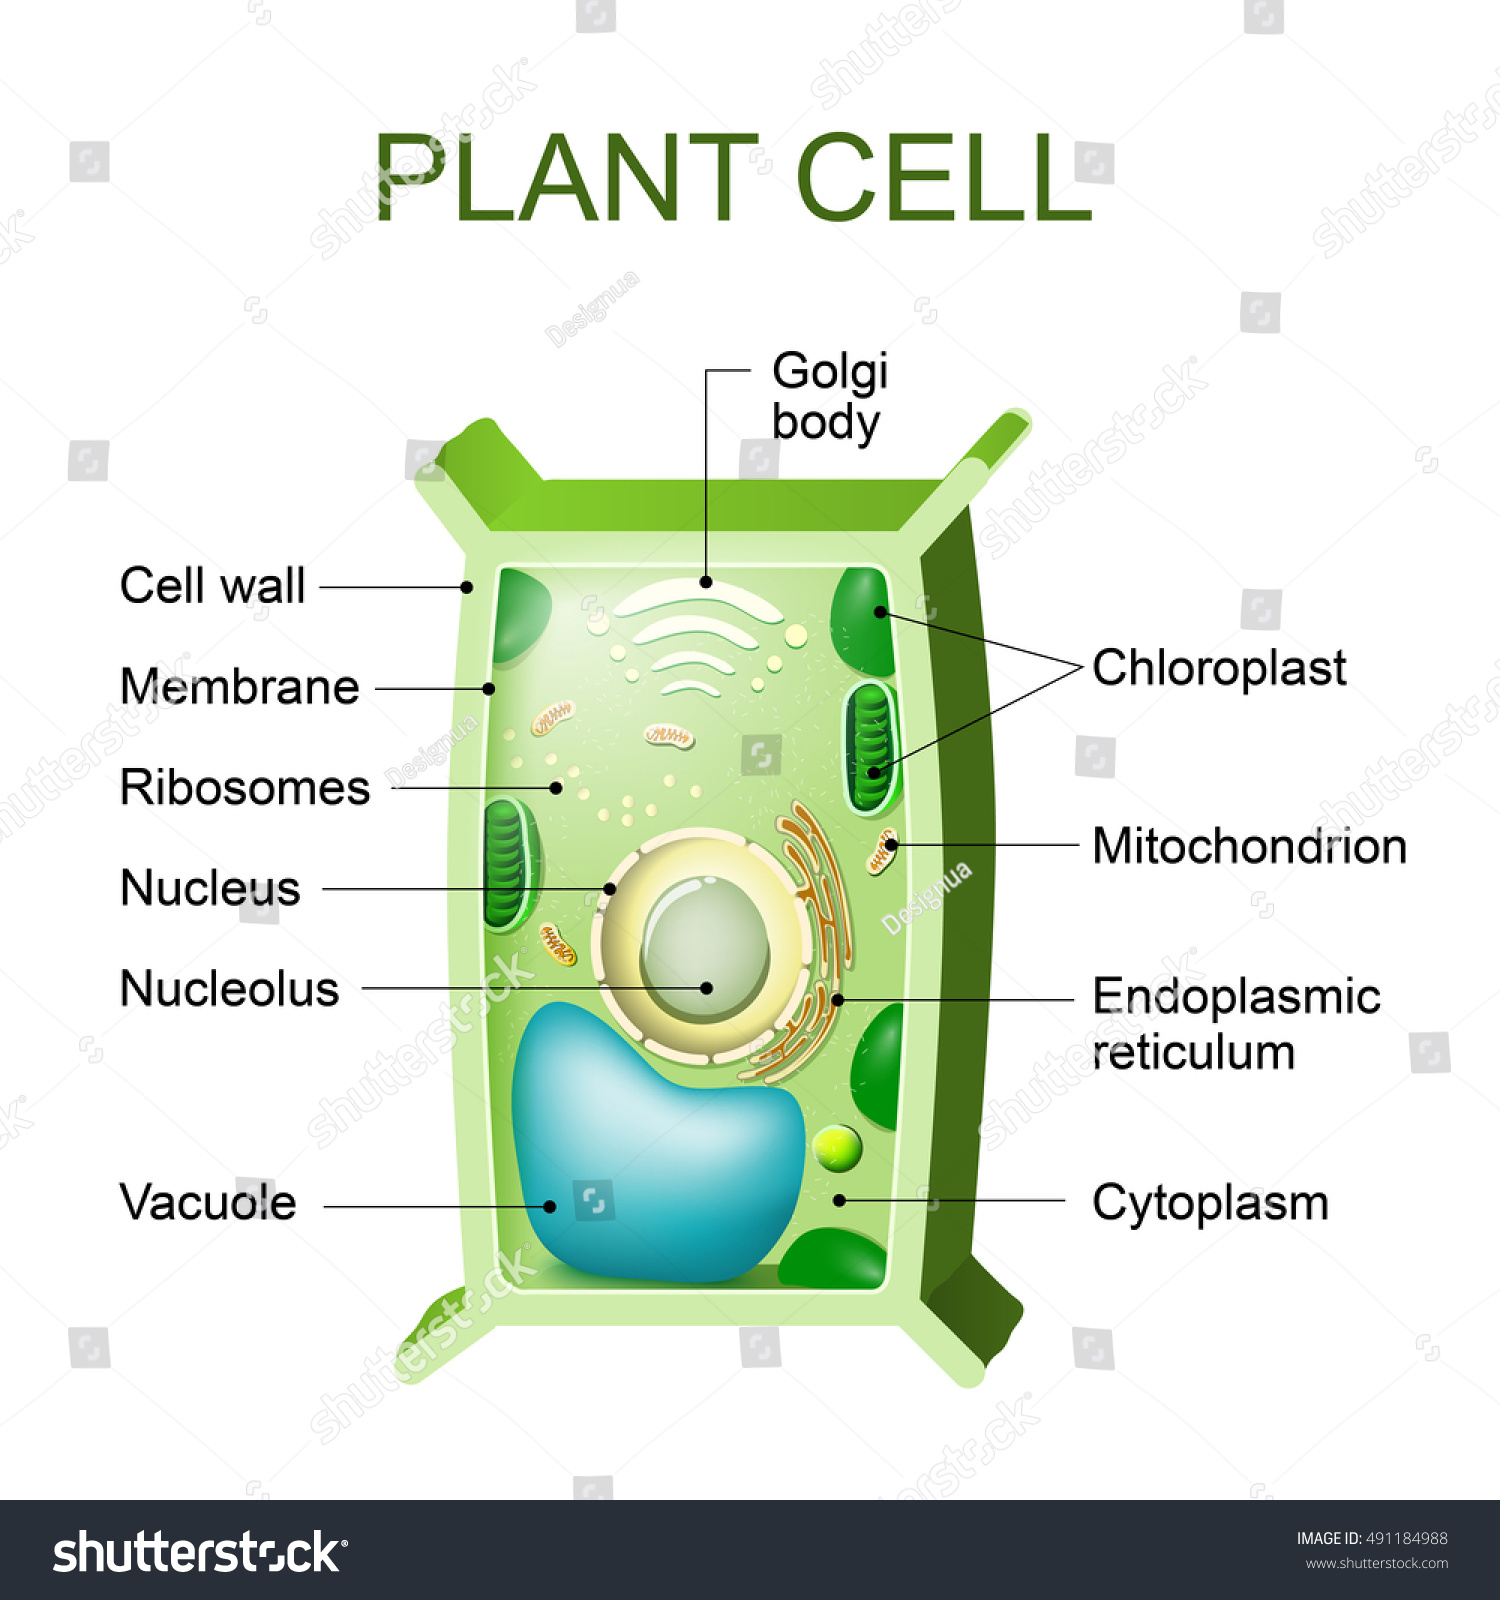 Anatomy of plant cell